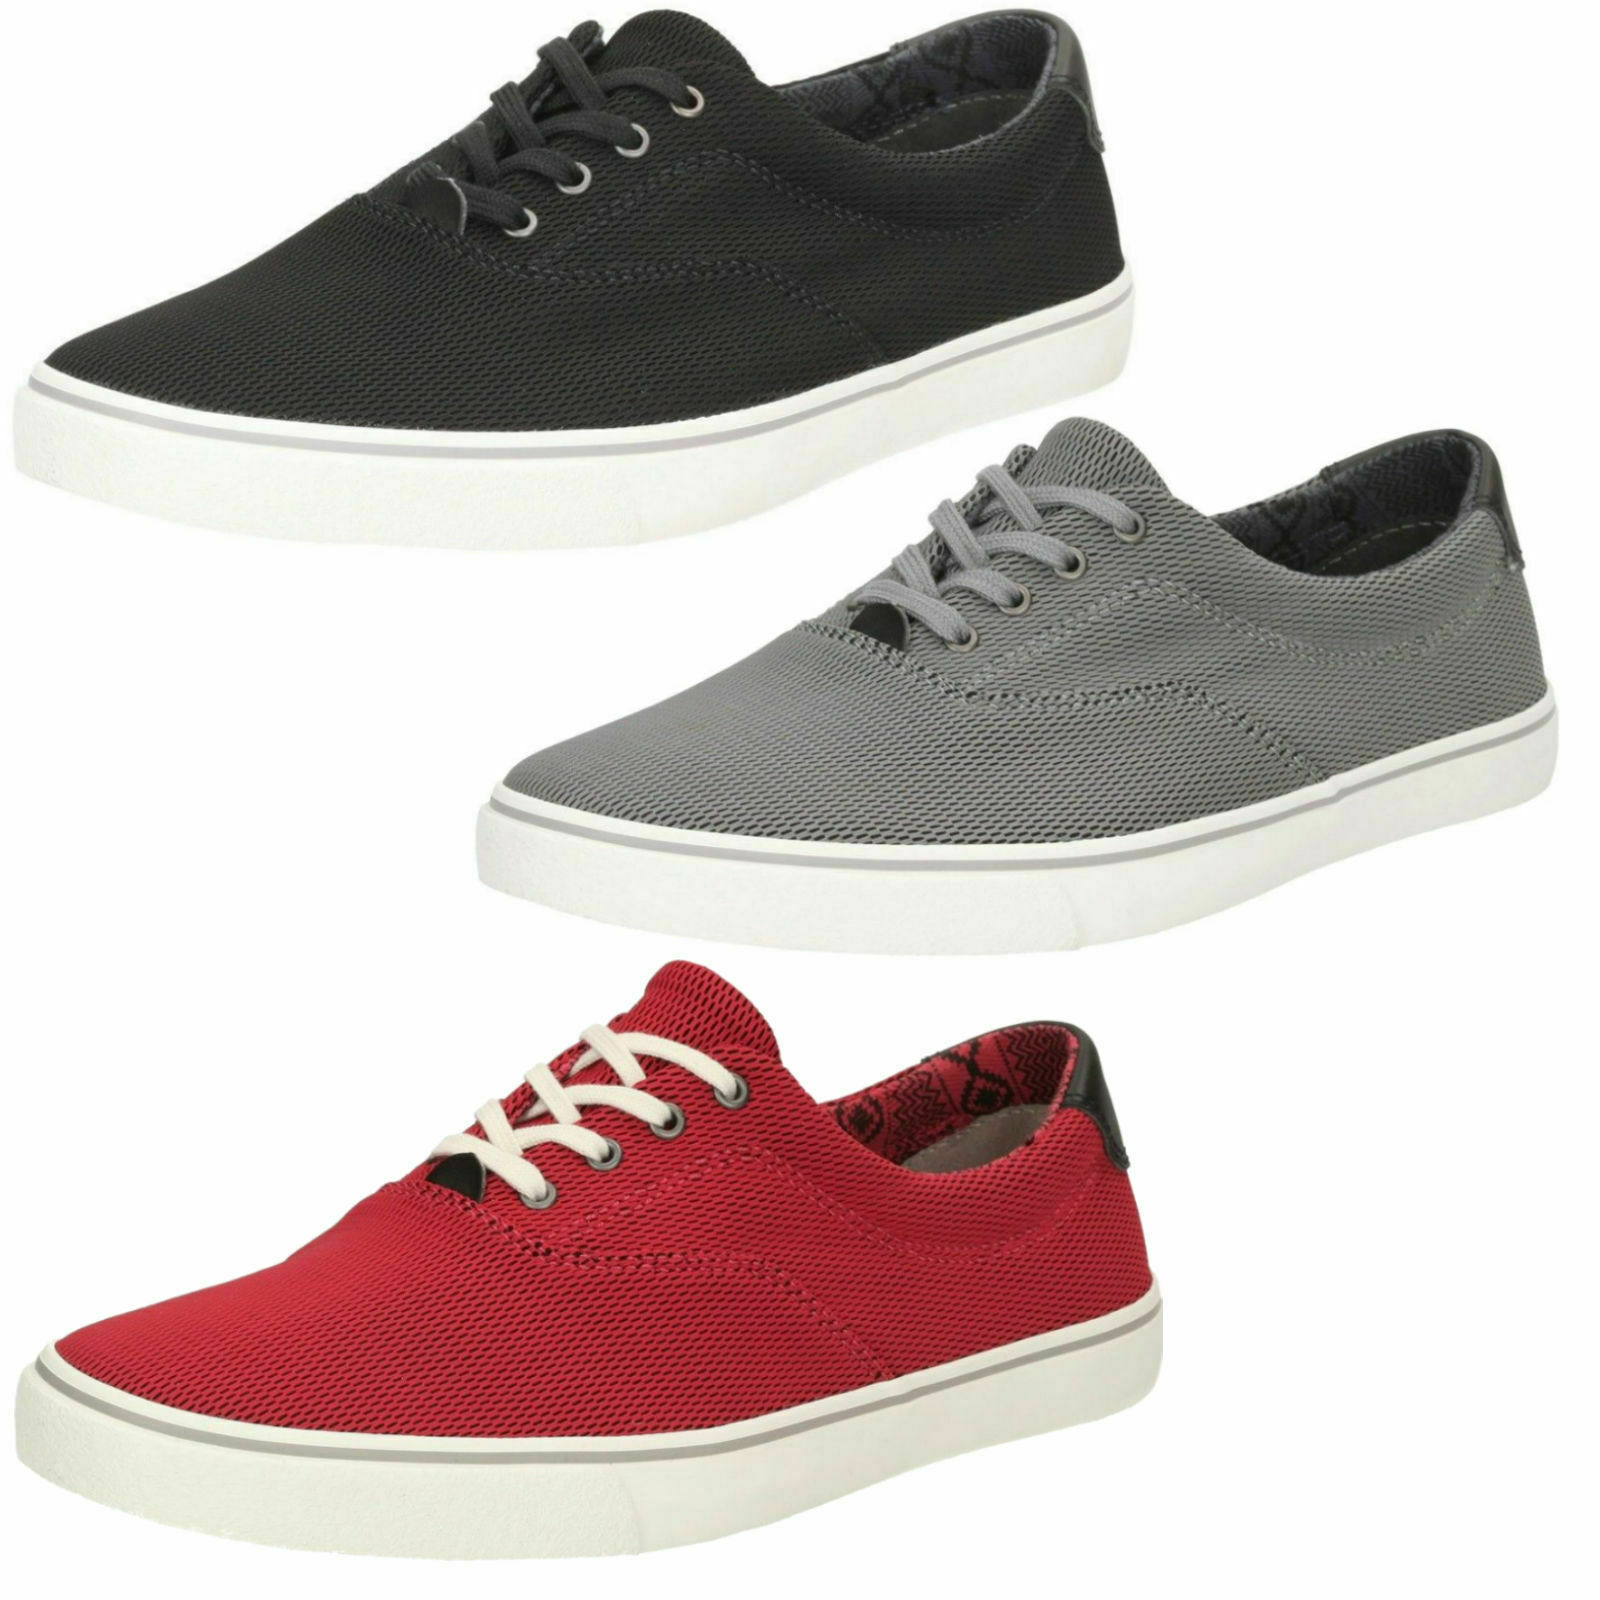 MENS CLARKS LACE UP CLASSIC CASUAL CANVAS WALKING SUMMER SHOES GOSLING WALK